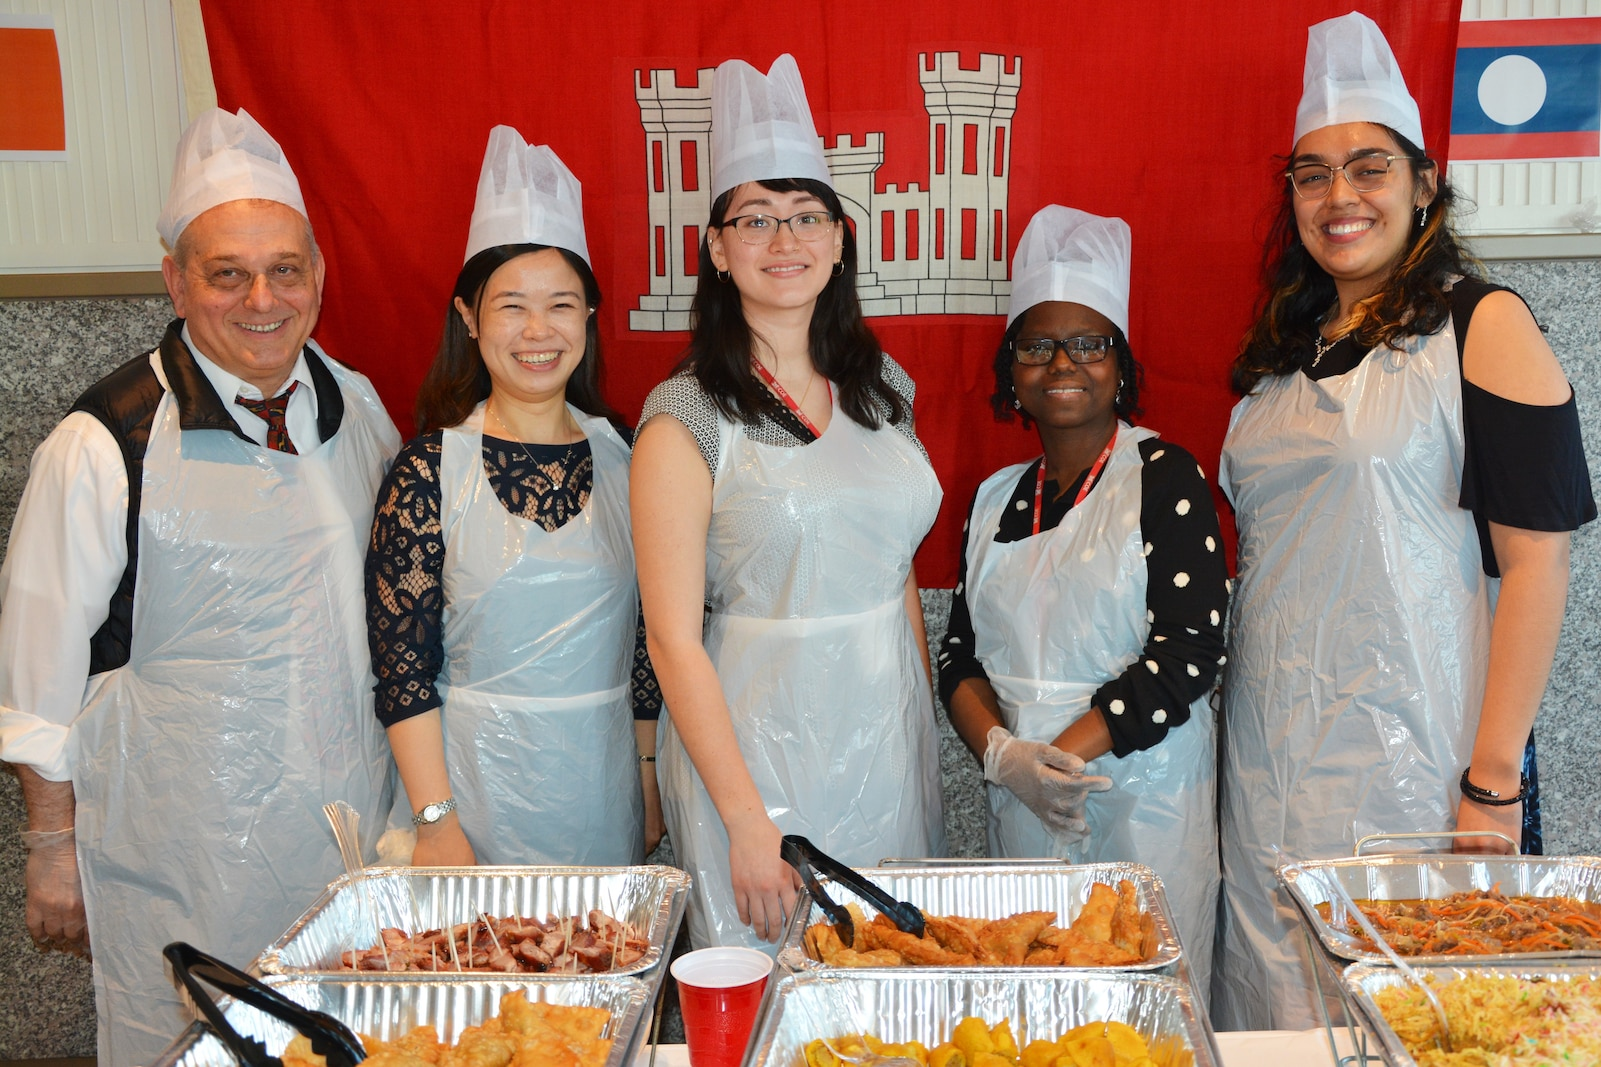 District personnel serve food at New York District's Diversity Day.